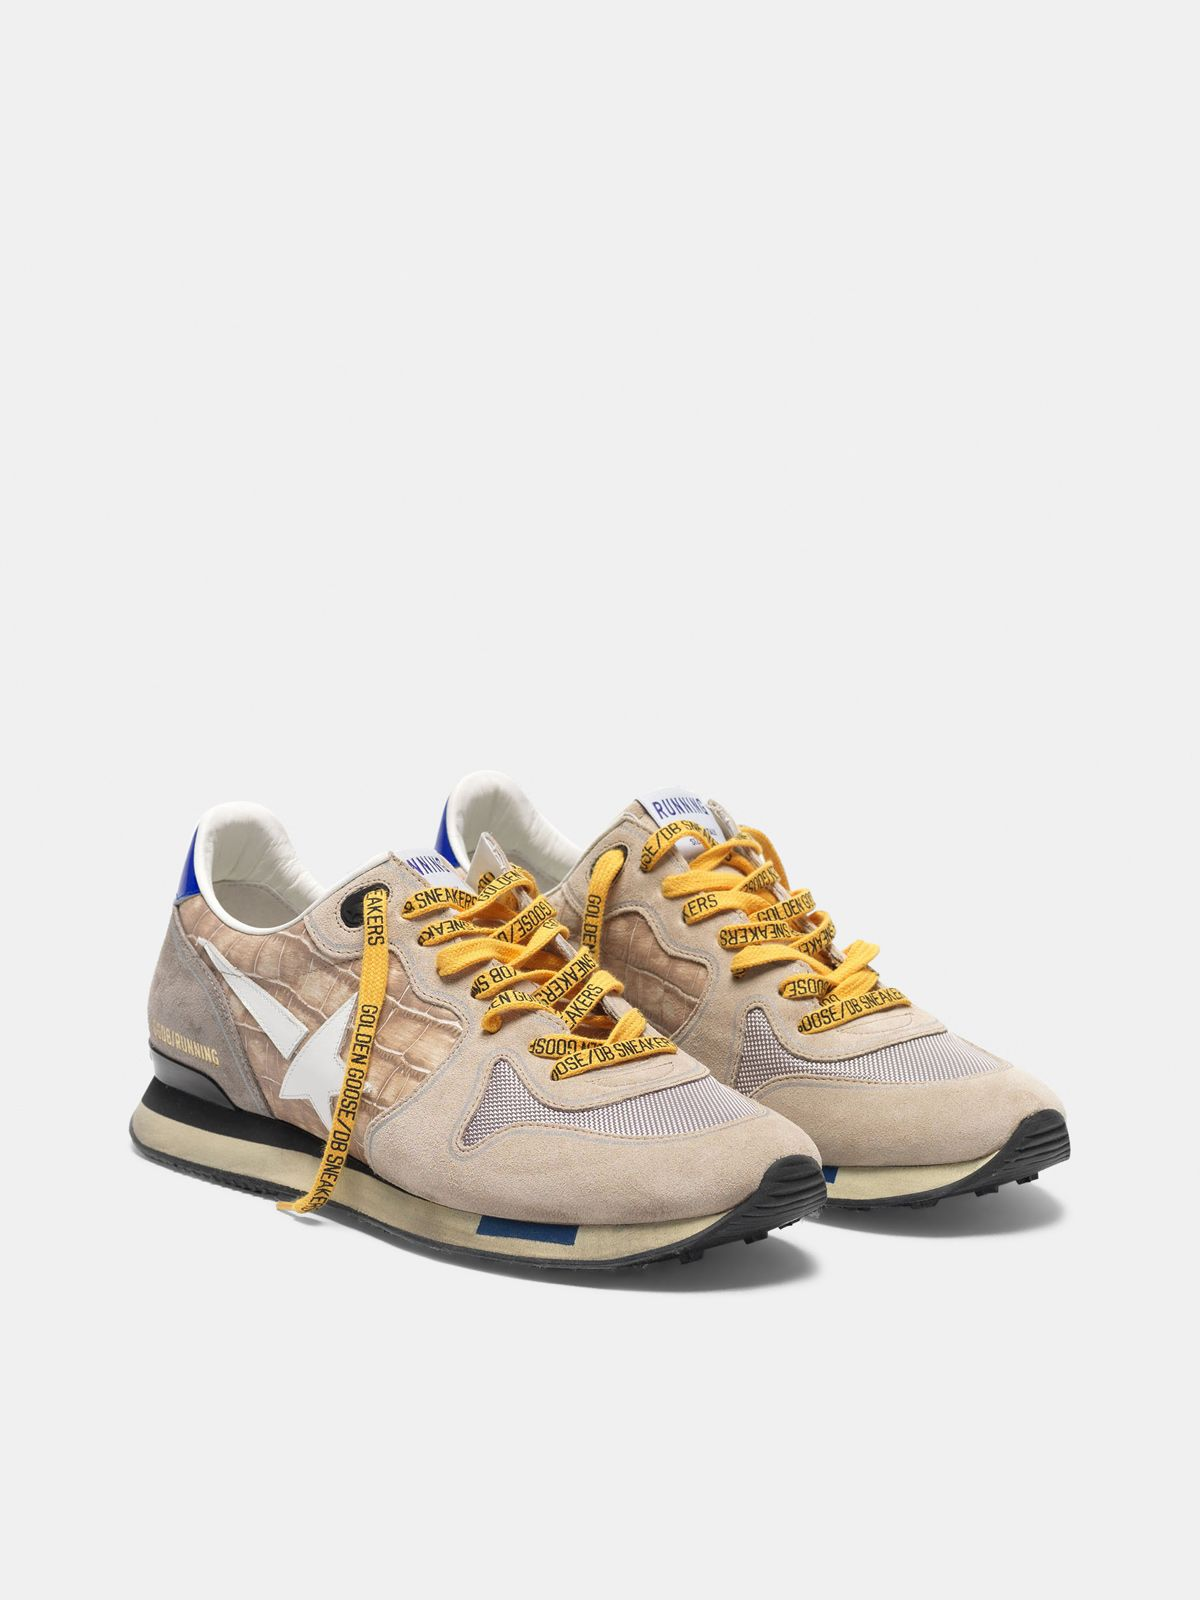 Golden Goose - Sneakers Running stampa cocco e suede nude in